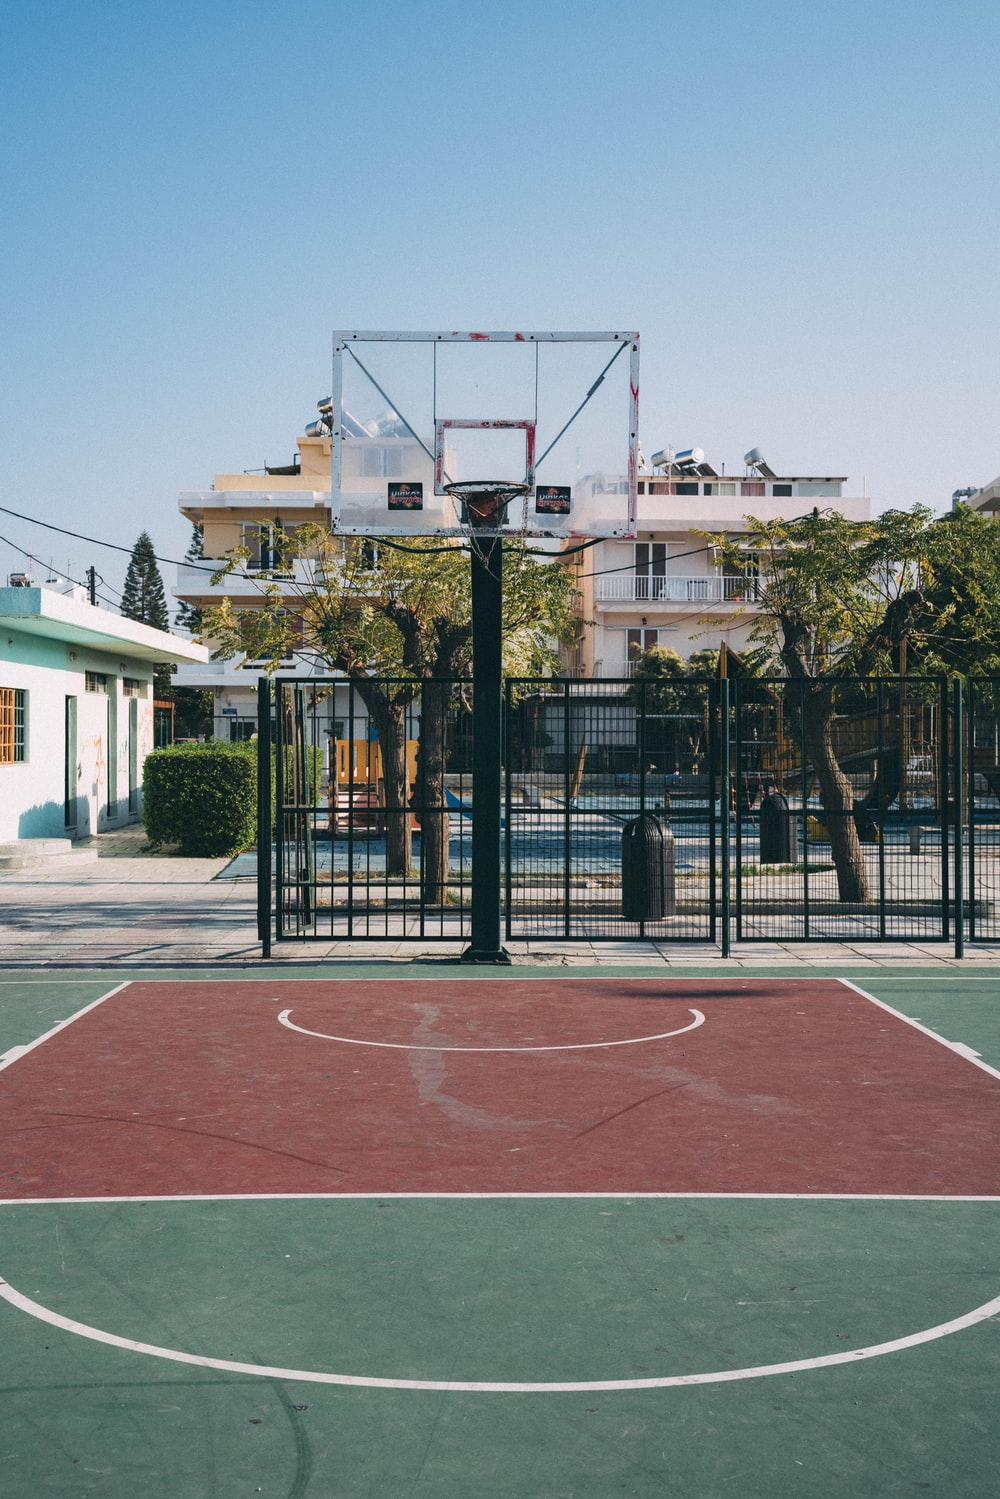 basketball system on empty playground